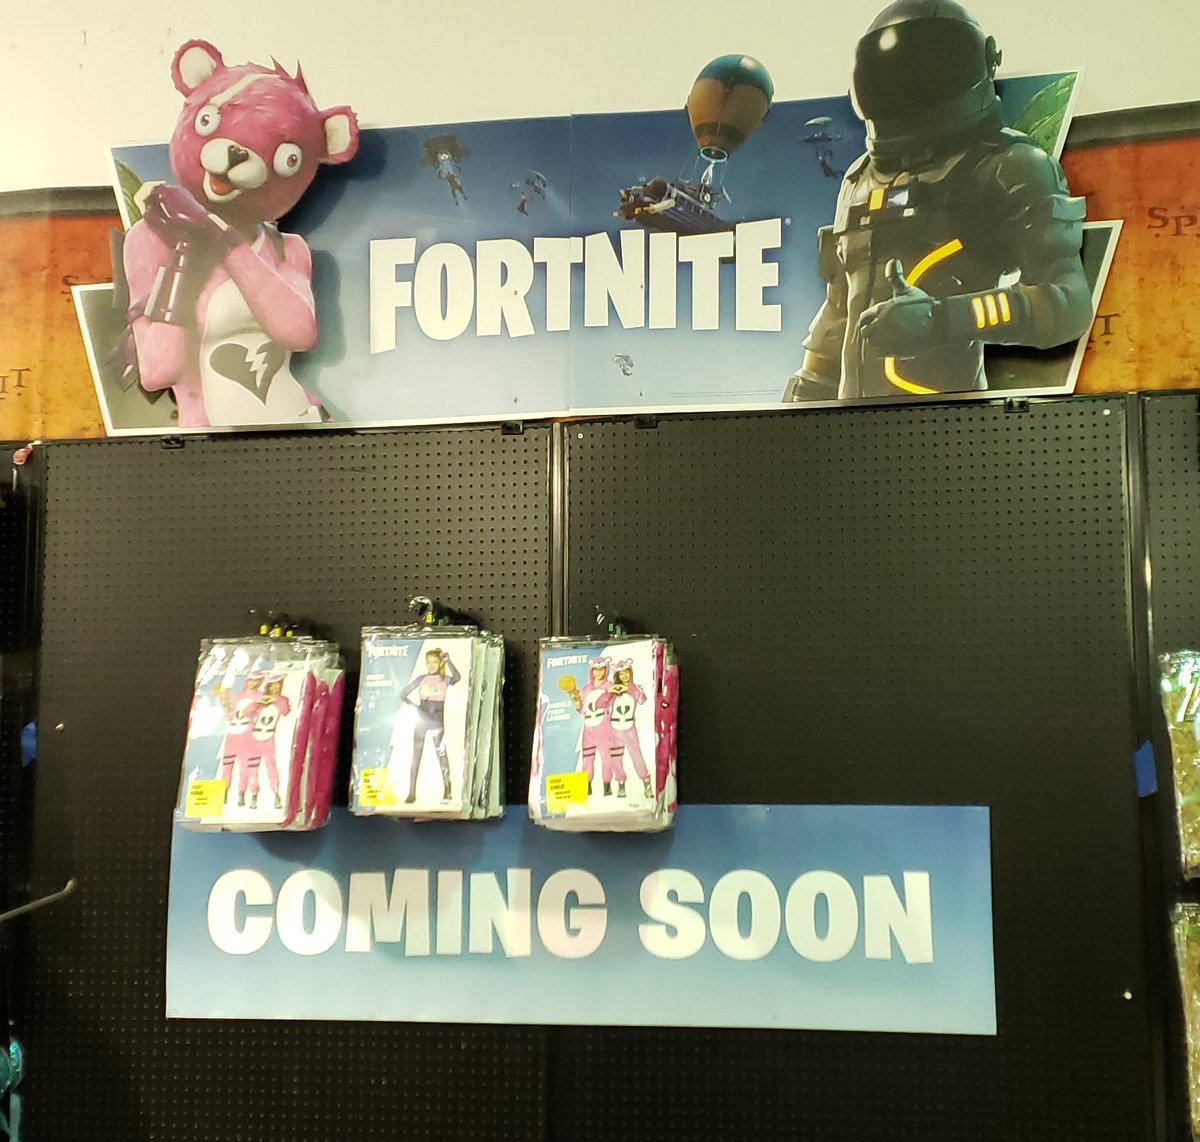 master0fhyrule road to super smash bros ultimate on twitter fortnite costumes coming soon to my local halloween store spirit halloween